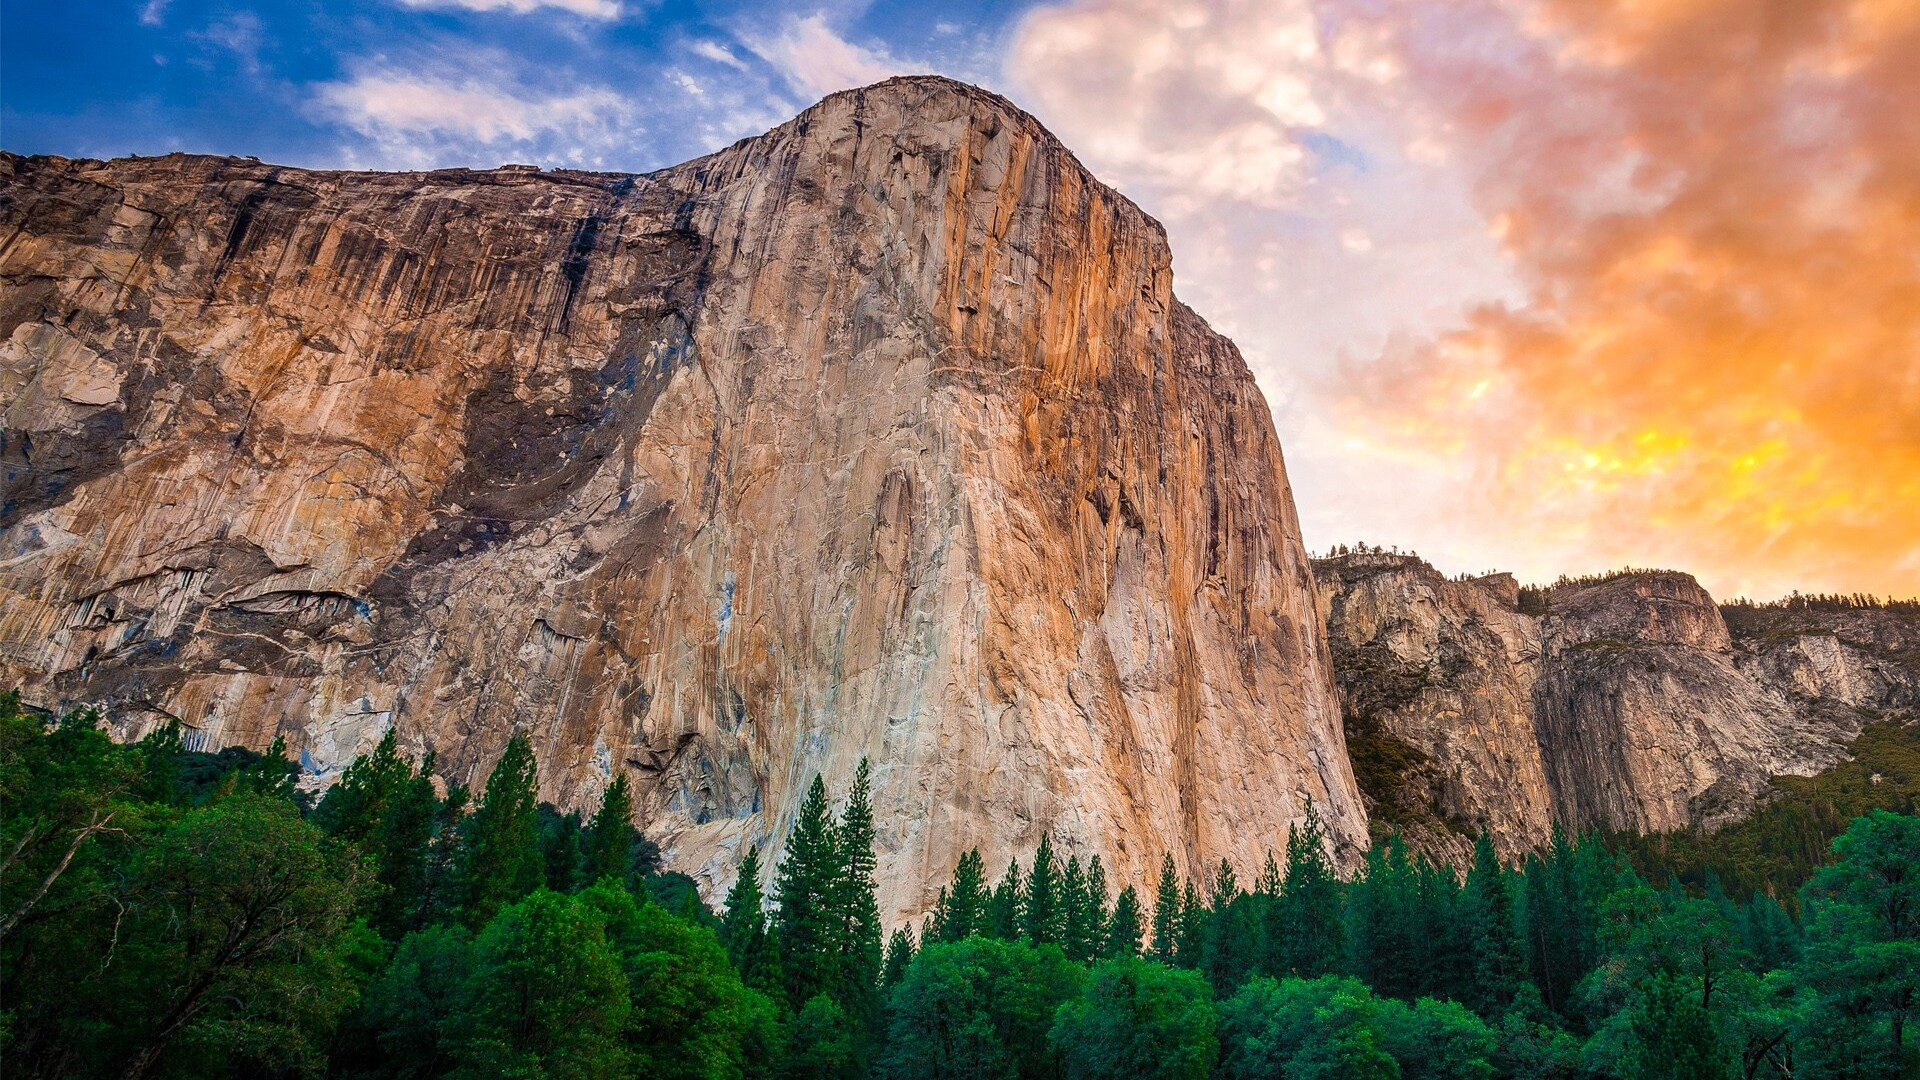 1920x1080 Wallpapers Hd Backgrounds Images Pics Photos: 1920x1080 Yosemite Mountains Laptop Full HD 1080P HD 4k